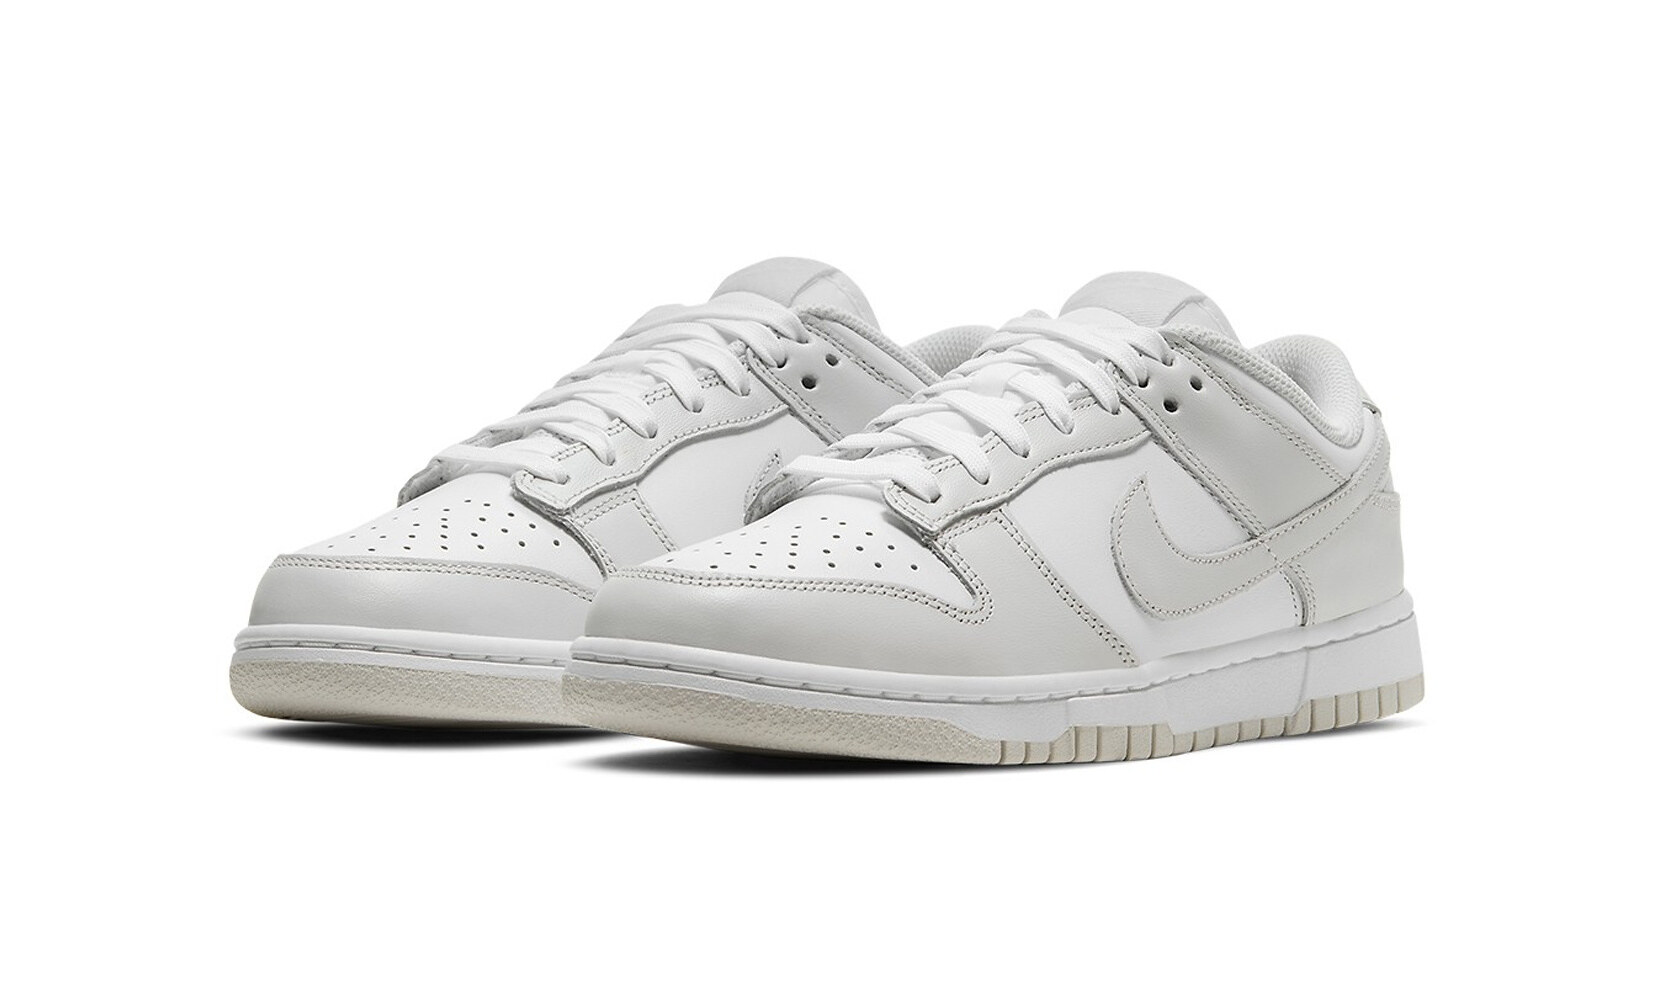 Nike Dunk Low Photos Dust